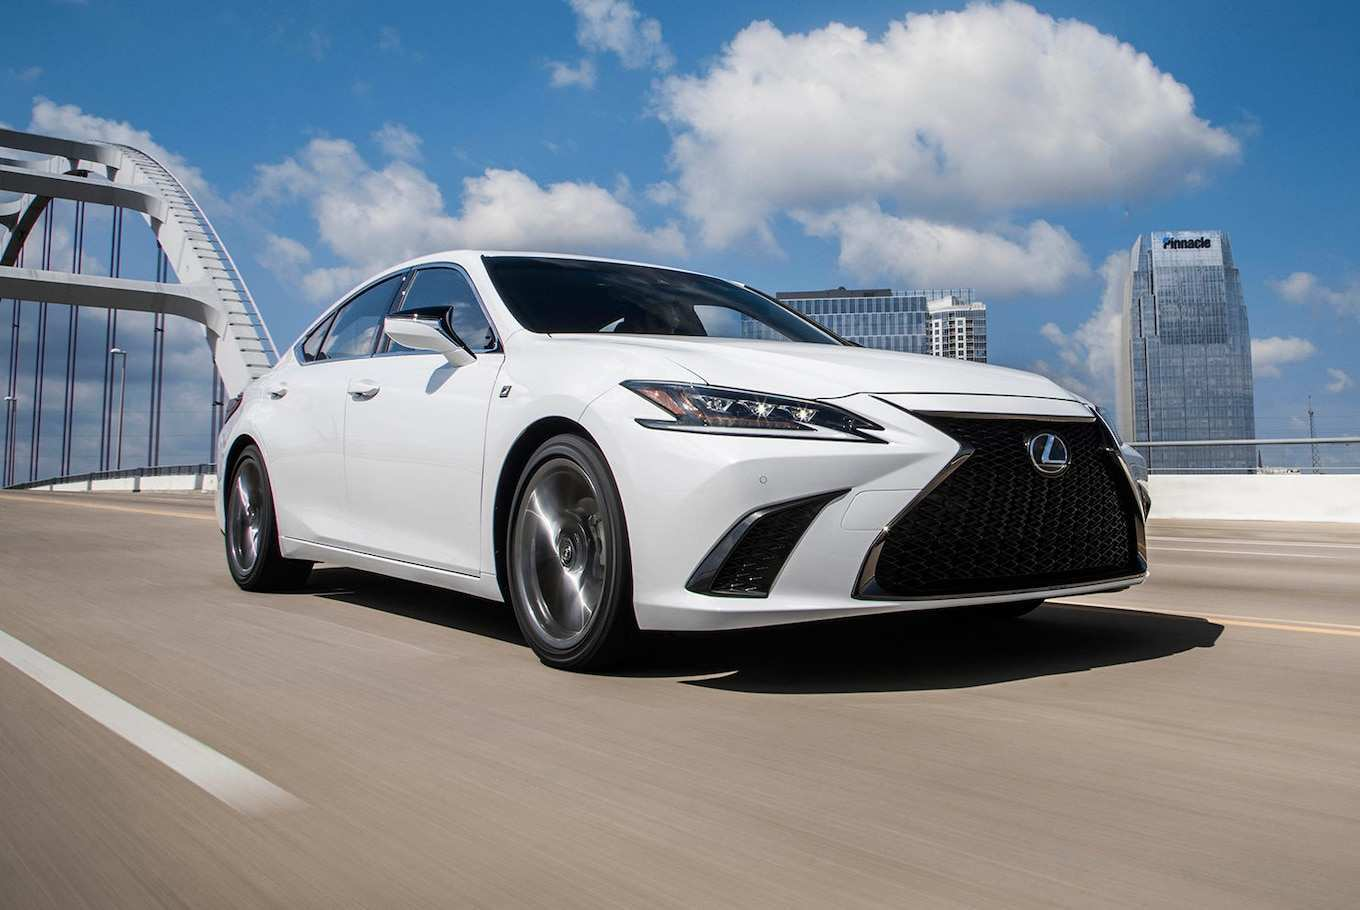 54 Concept of The Lexus Es 2019 Weight Review And Specs Engine by The Lexus Es 2019 Weight Review And Specs